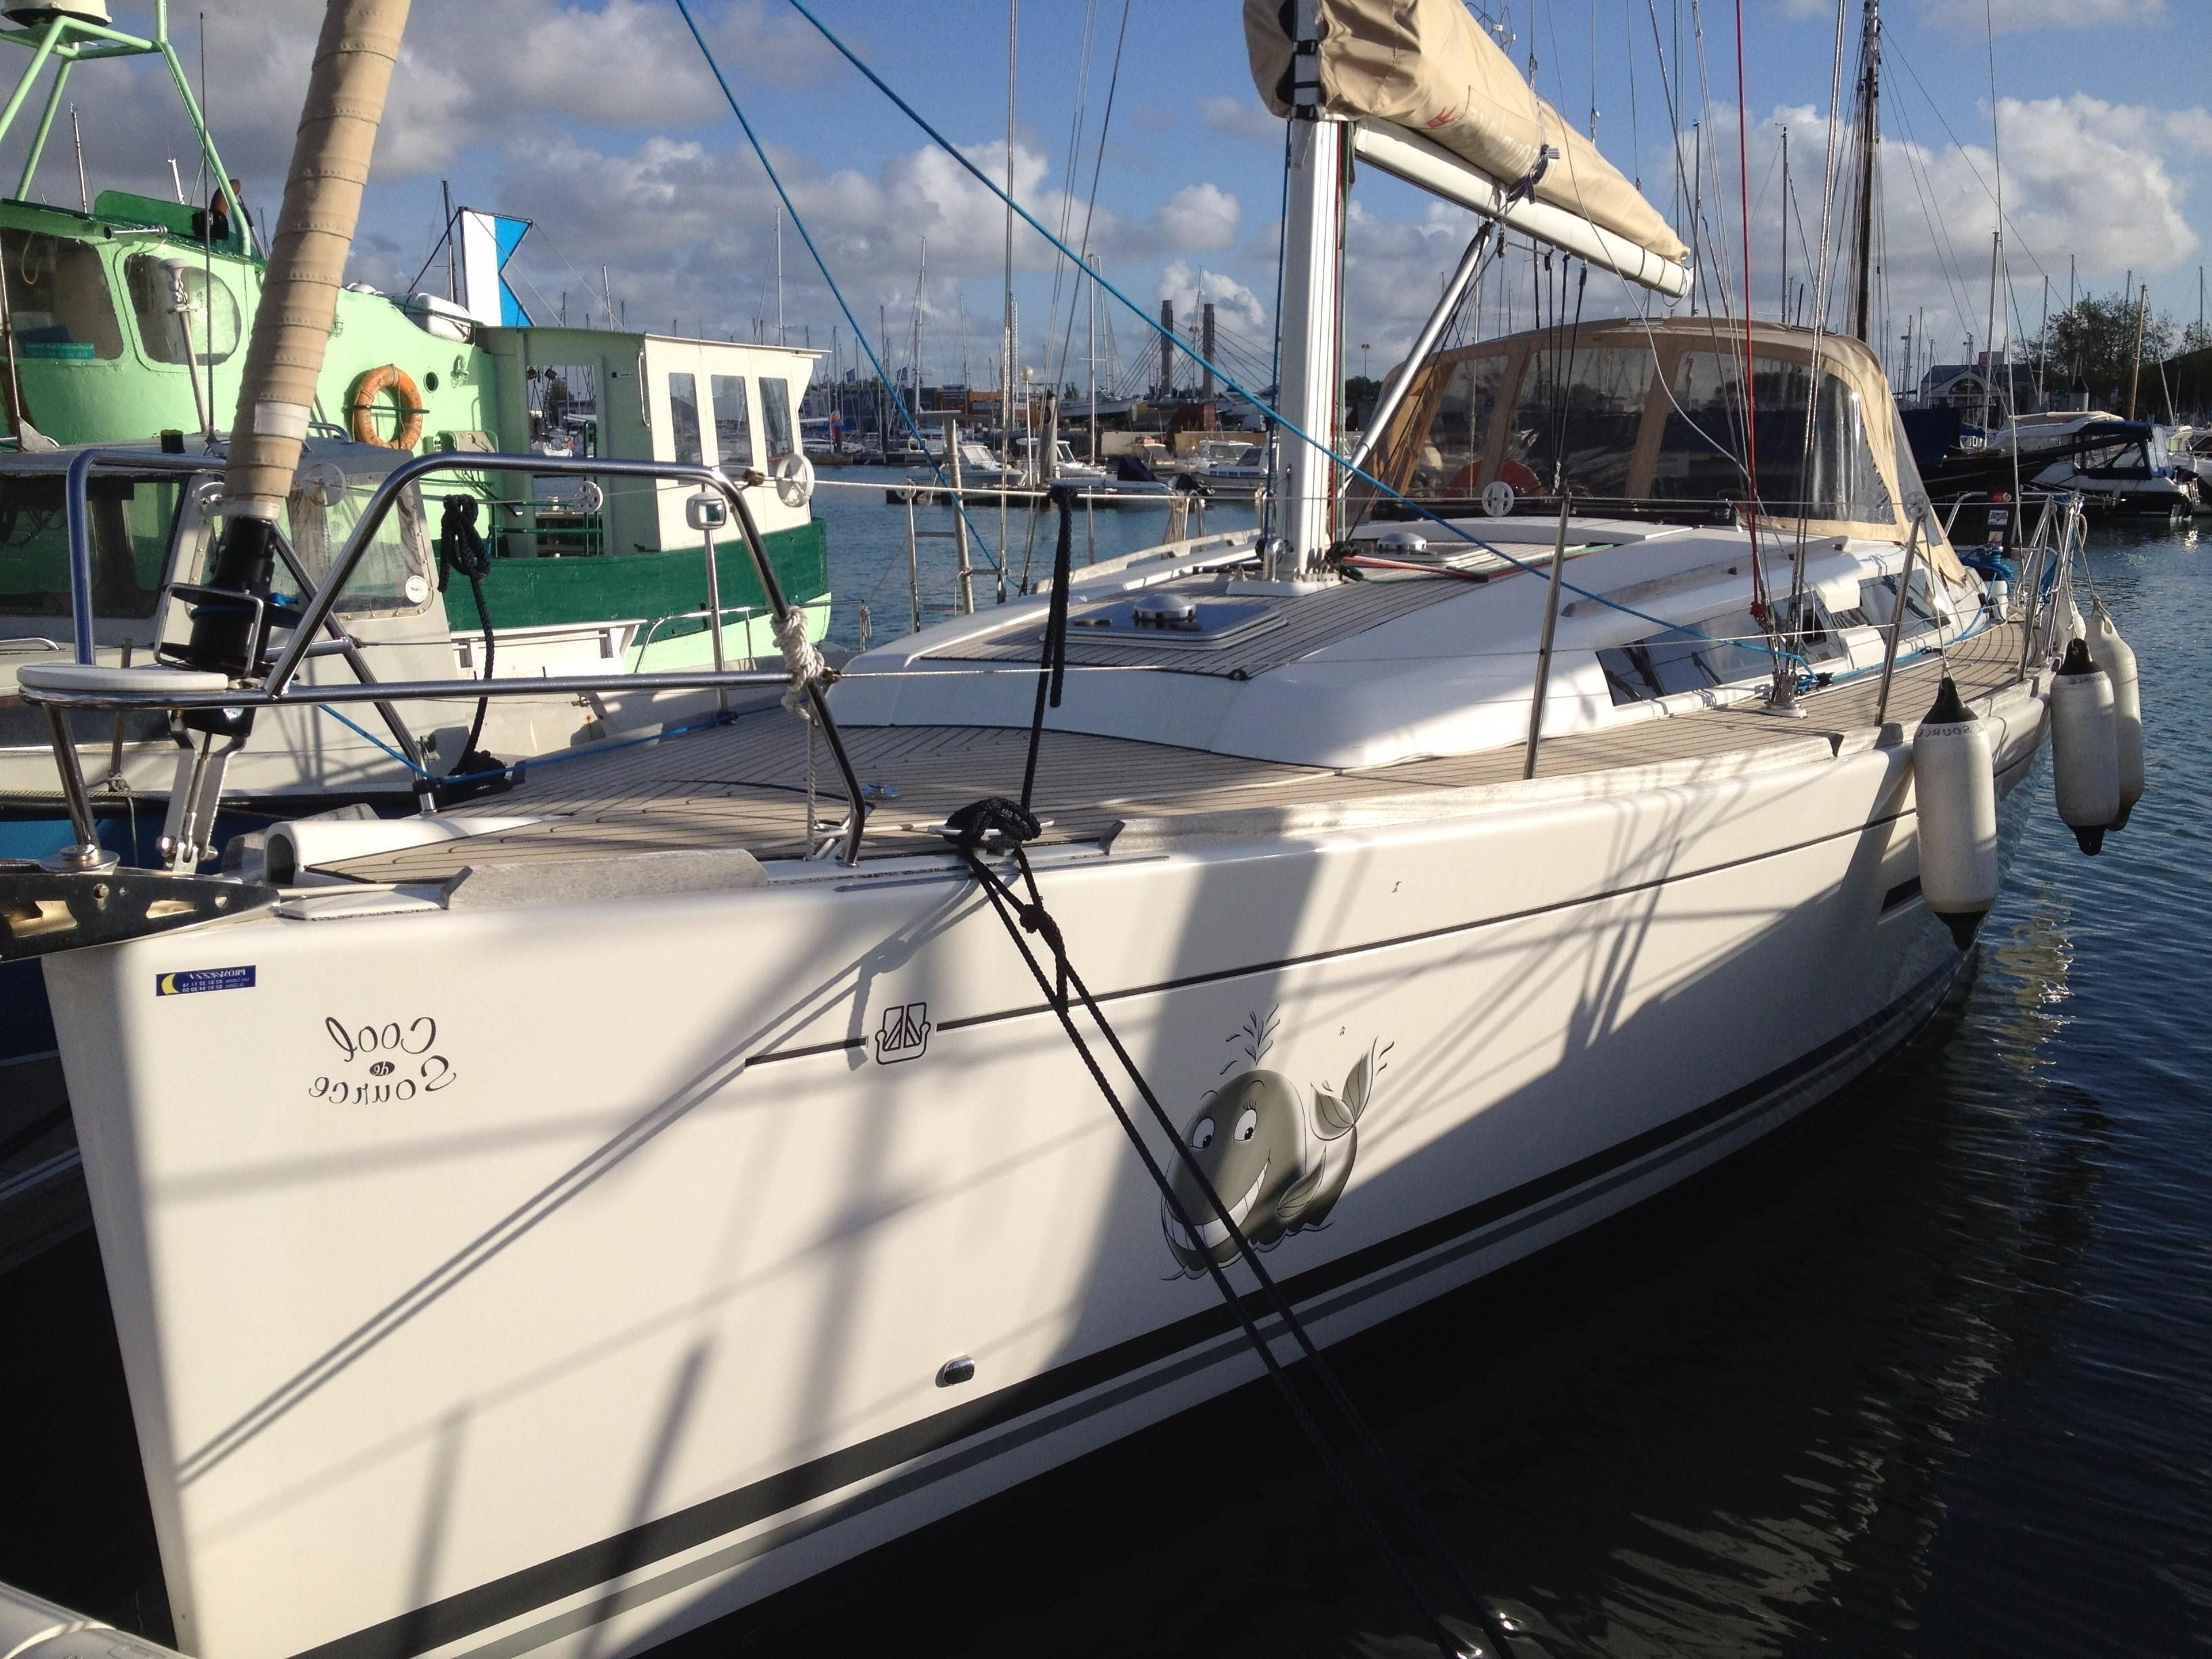 2012 dufour dufour 375 gl sail boat for sale. Black Bedroom Furniture Sets. Home Design Ideas